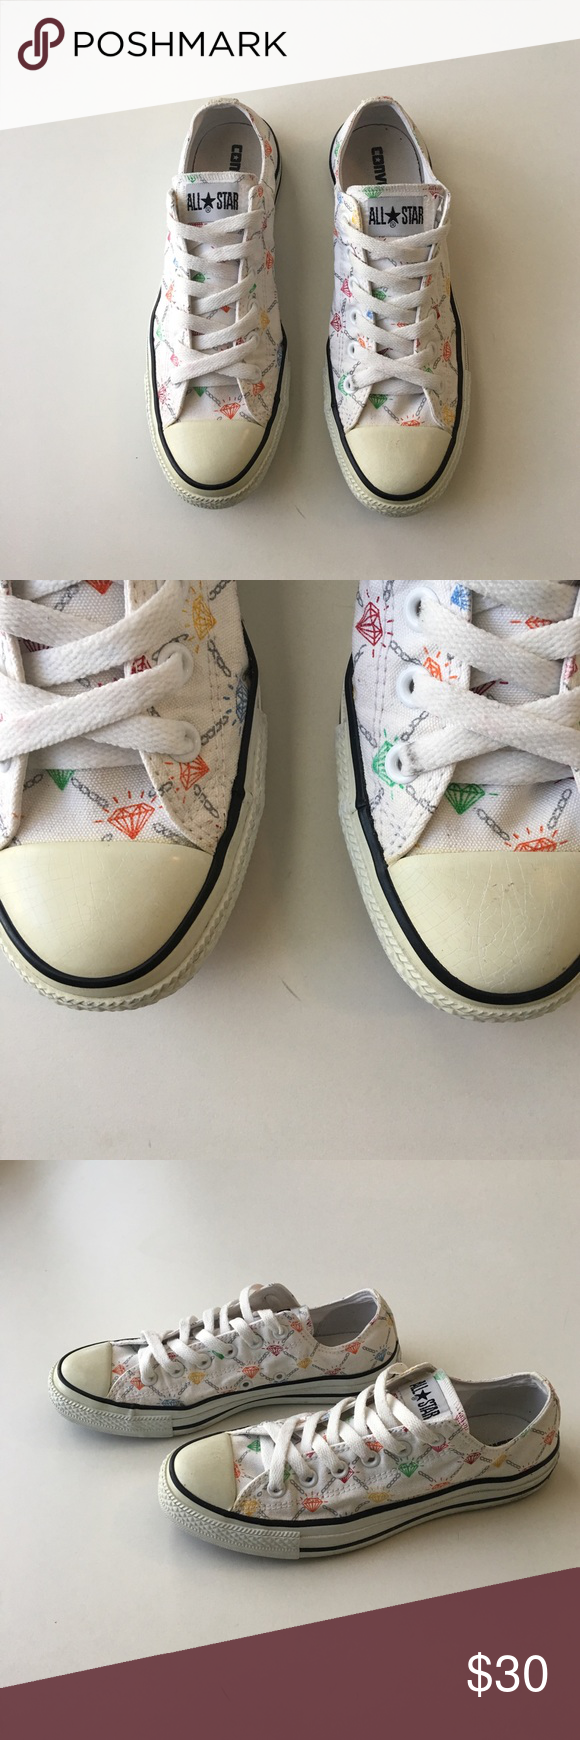 f651b52e97f4 Diamond-Patterned Converse All Stars These Converse All Stars have  multi-colored diamonds on white canvas pattern. I bought these 10+ years  ago